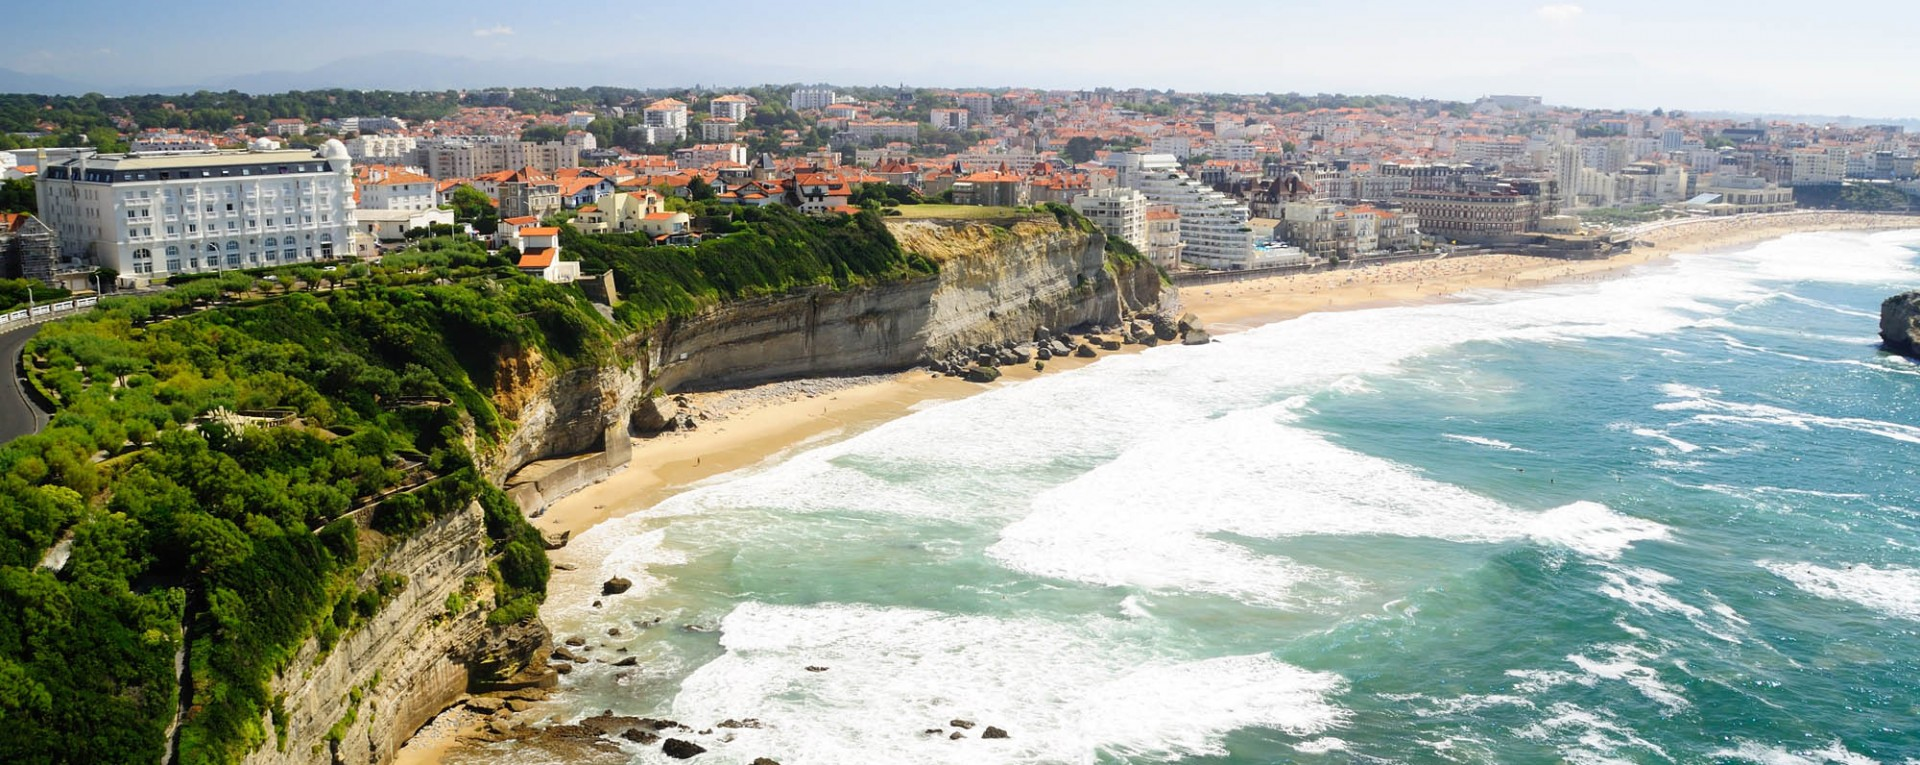 Luxury short breaks in biarritz 2018 kirker holidays - Office du tourisme biarritz horaires ...